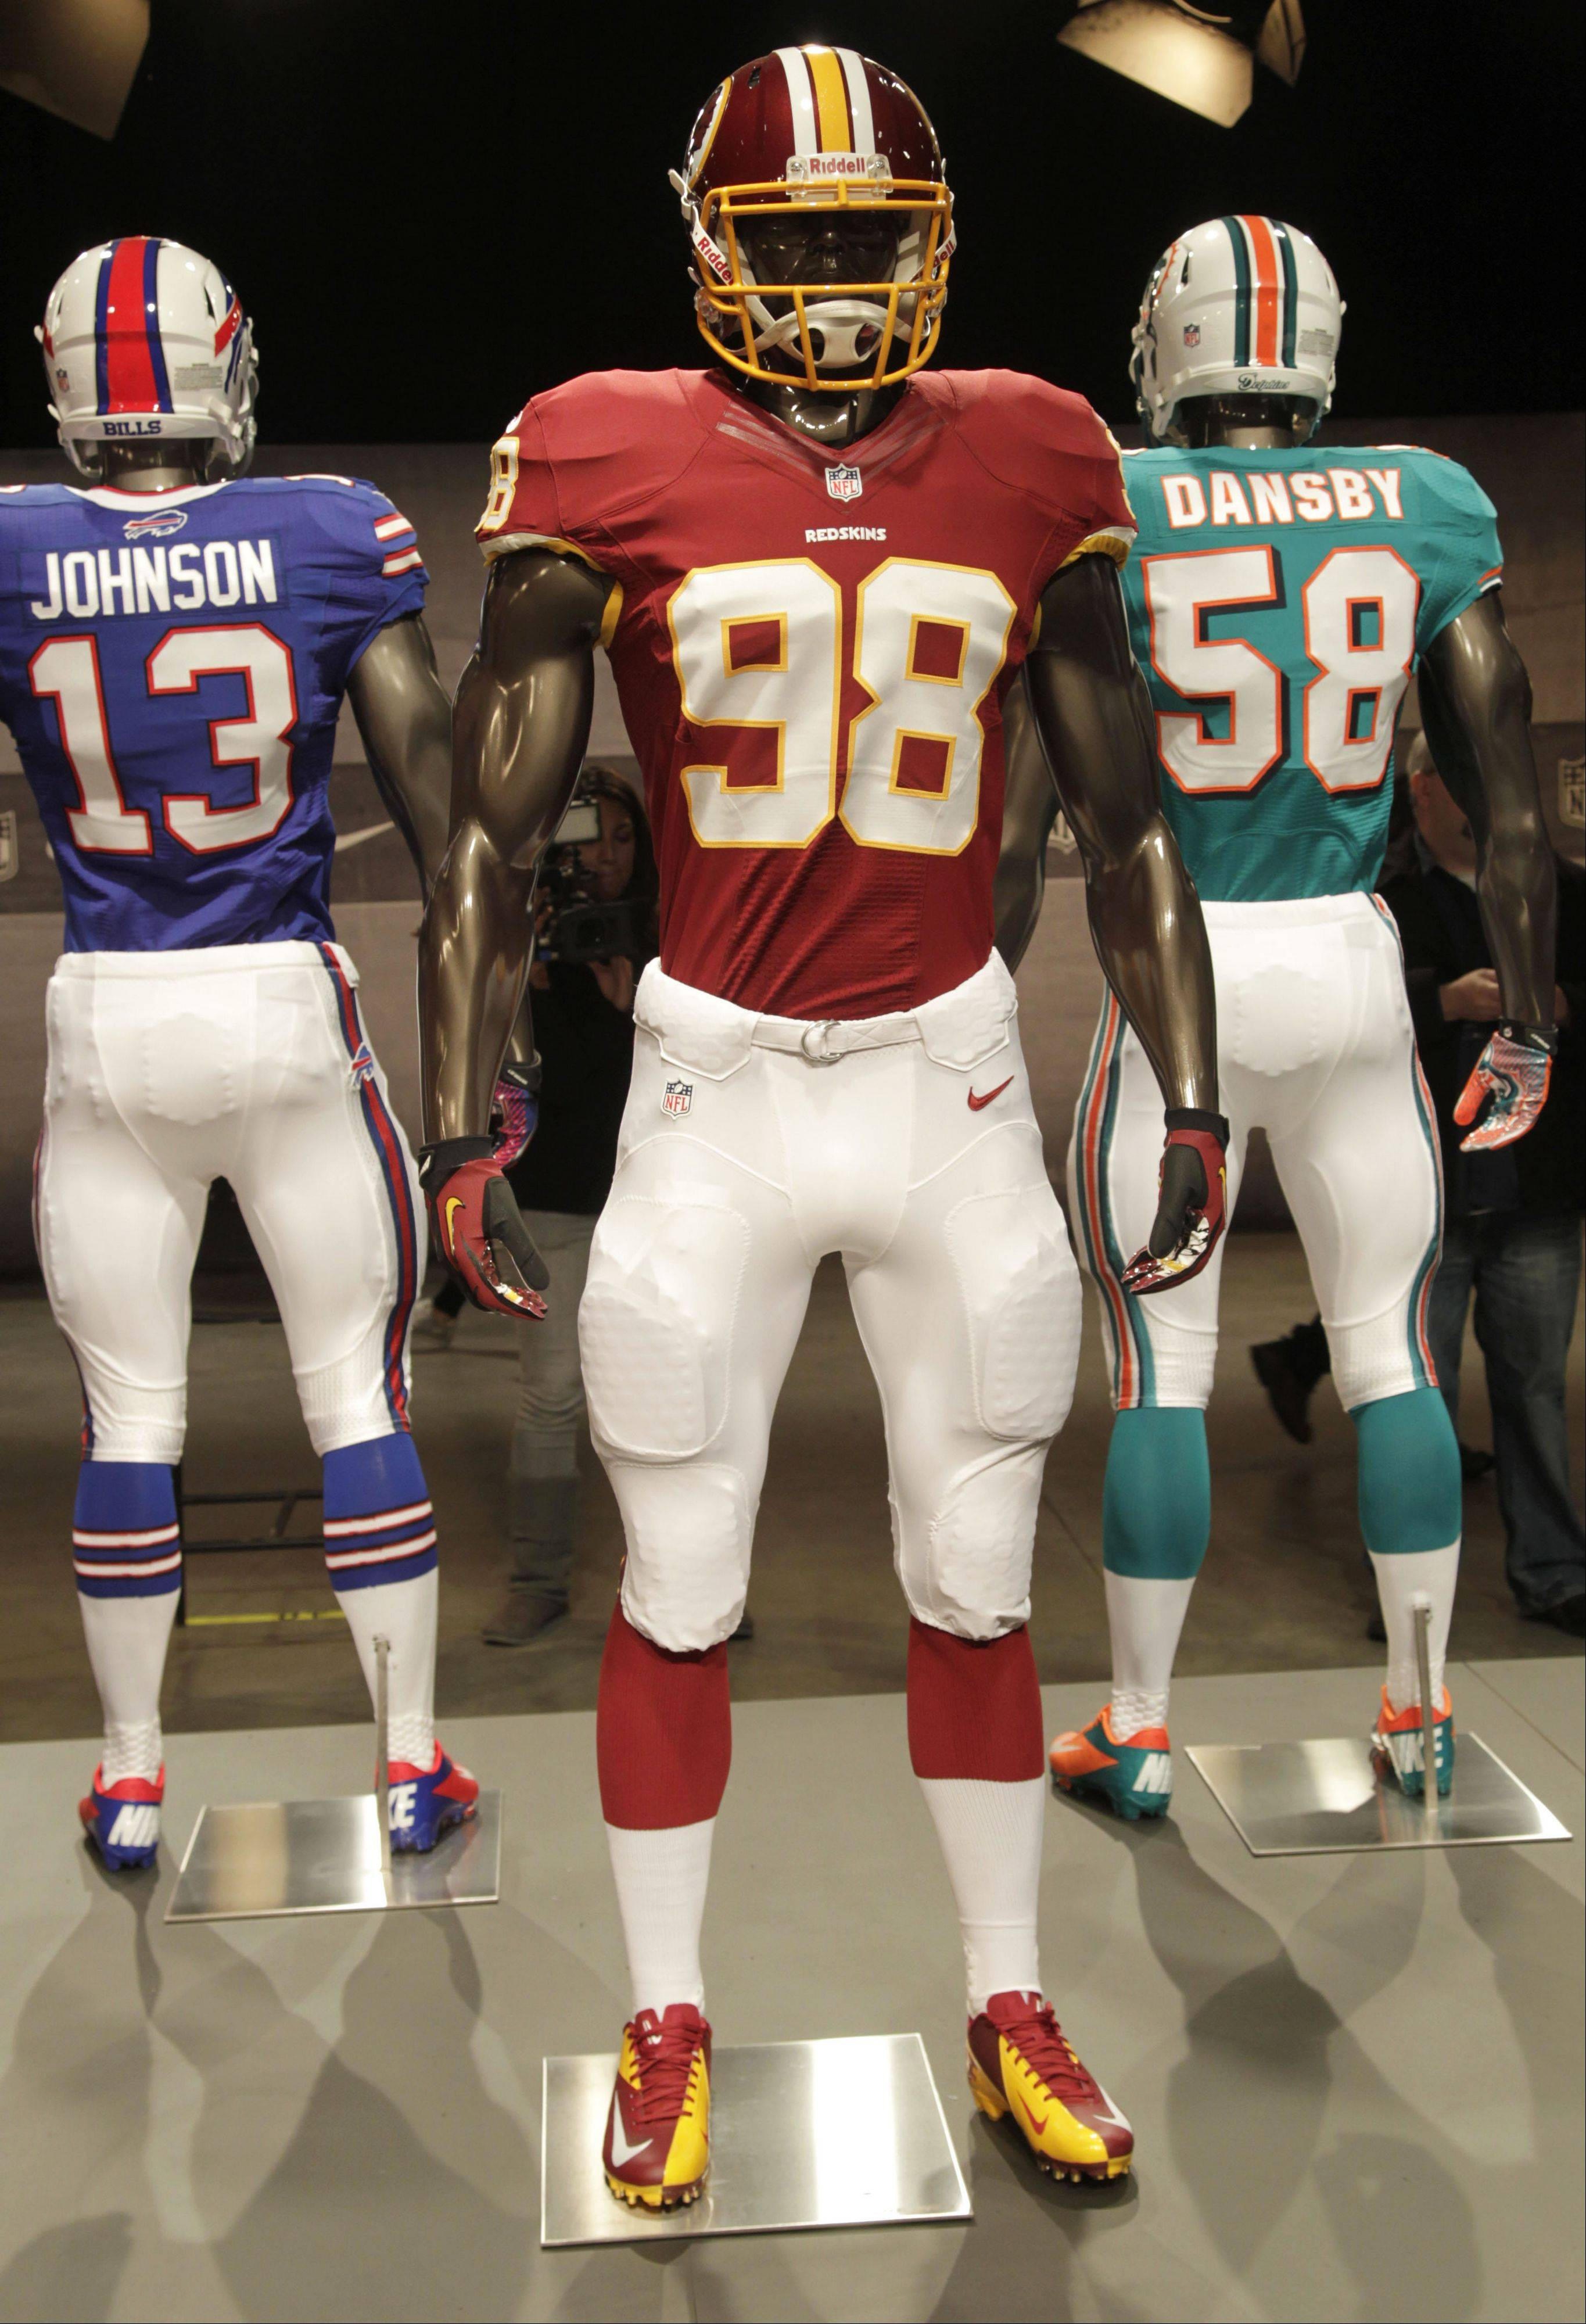 The new Washington Redskins uniform is displayed on a mannequin in New York, Tuesday, April 3, 2012. NFL has unveiled its new sleek uniforms designed by Nike. While most of the new uniforms are not very different visually, they all are made with new technology that make them lighter, dryer and more comfortable.